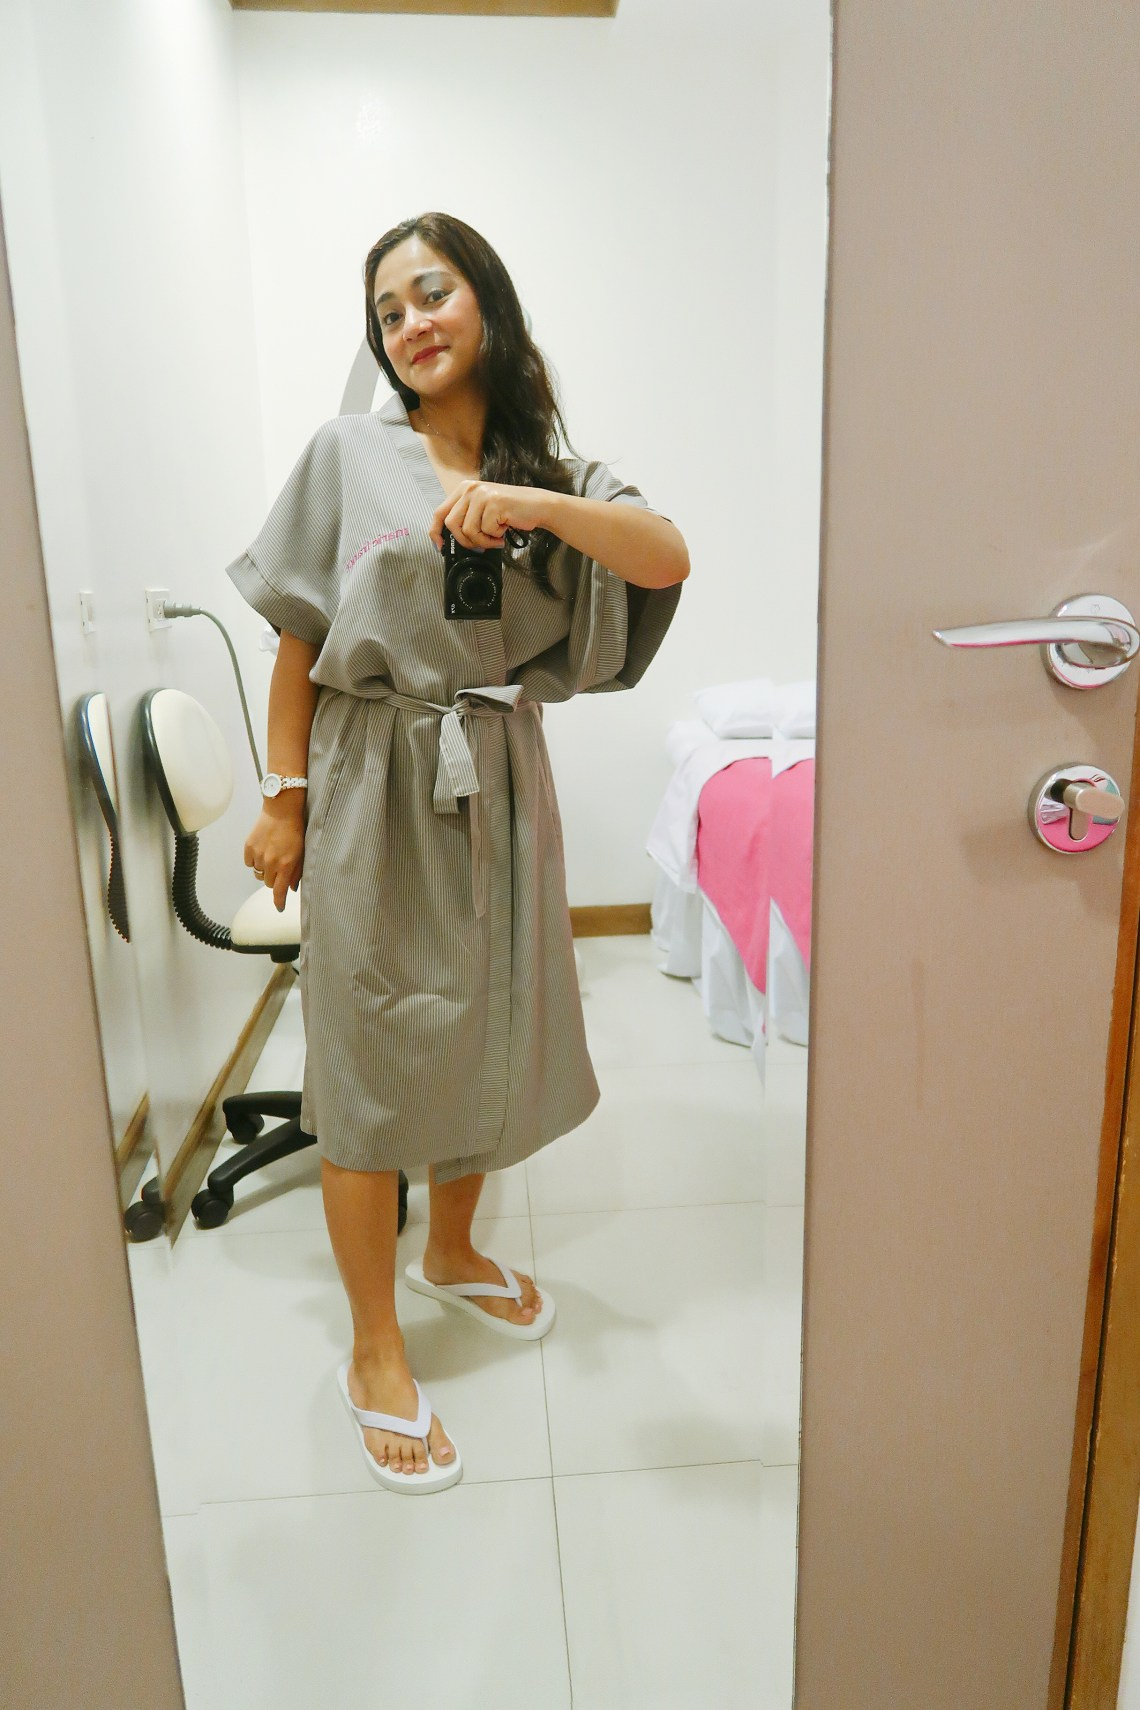 dyosathemomma: Marie France Slimming EDM+ Treatment, mommy blogger ph